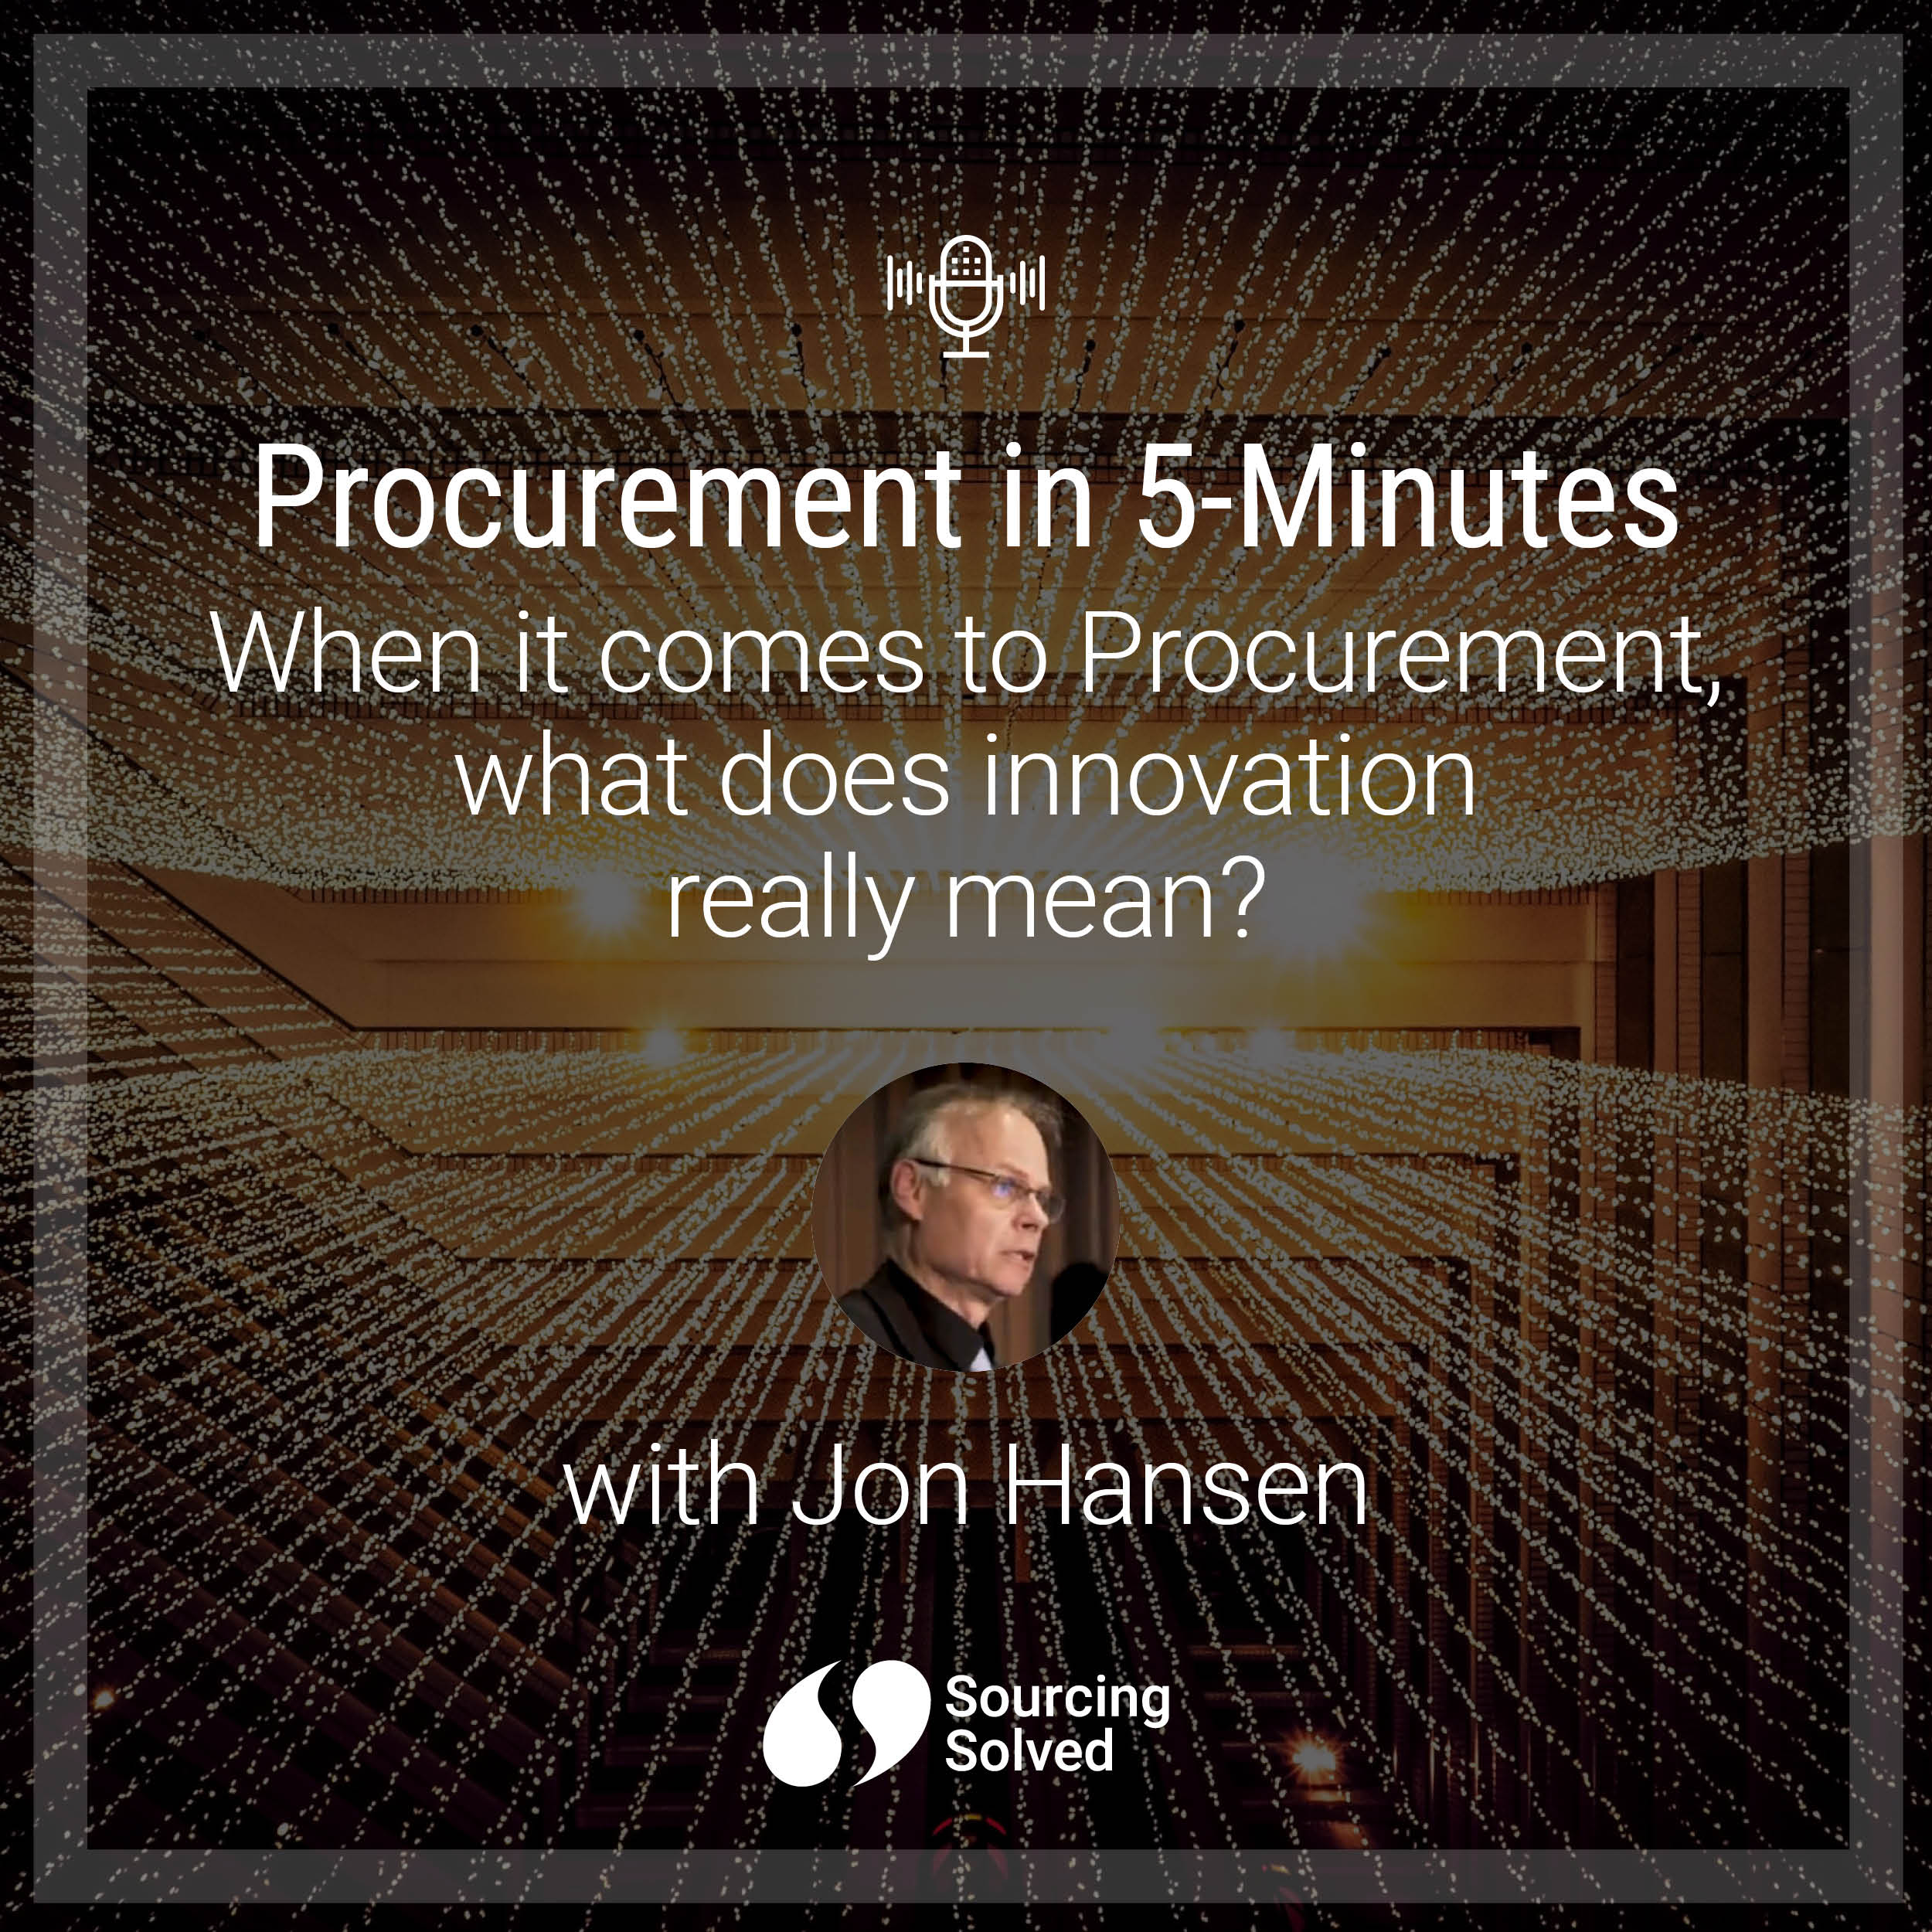 Procurement in 5-Minutes: When it comes to Procurement, what does innovation really mean?